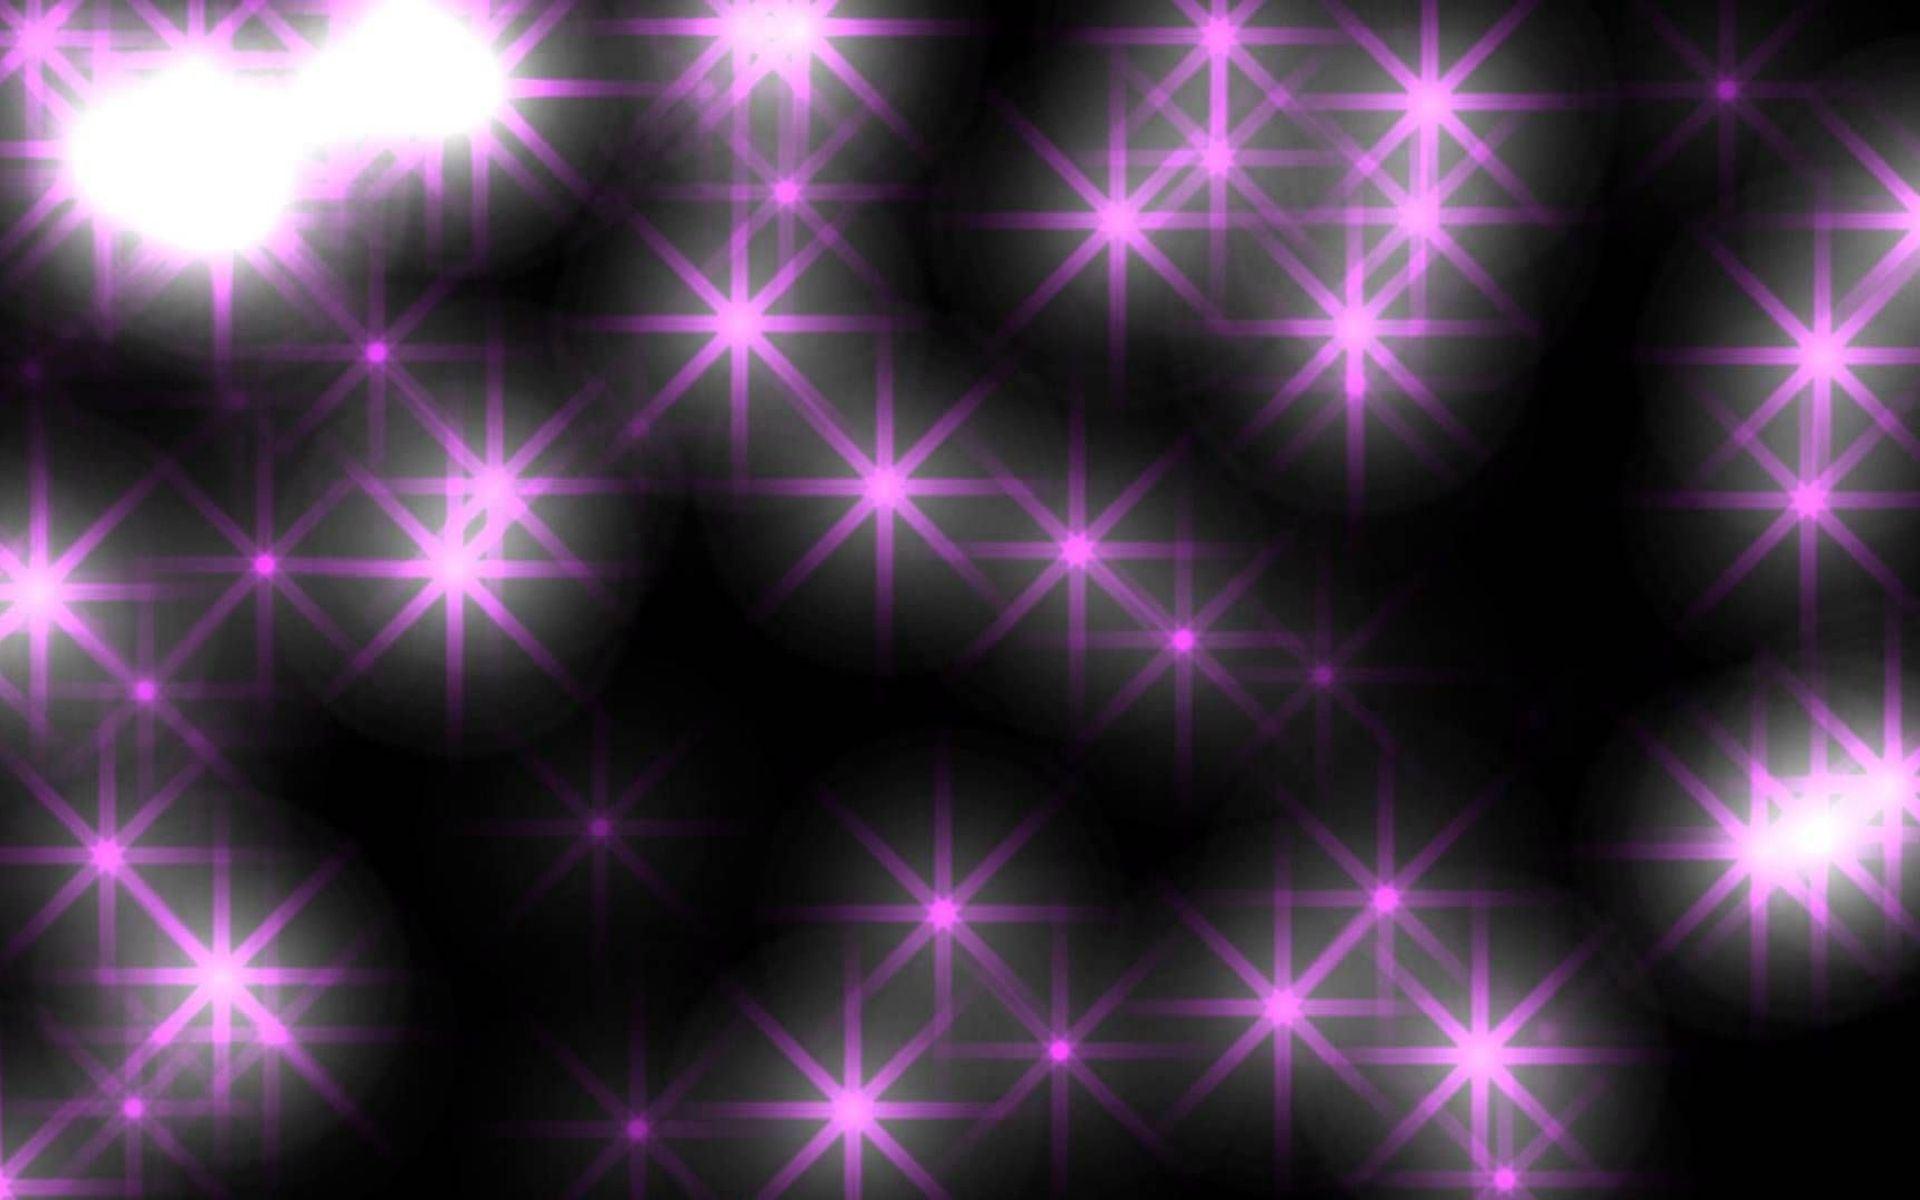 Black glitter hd background 1920x1200.